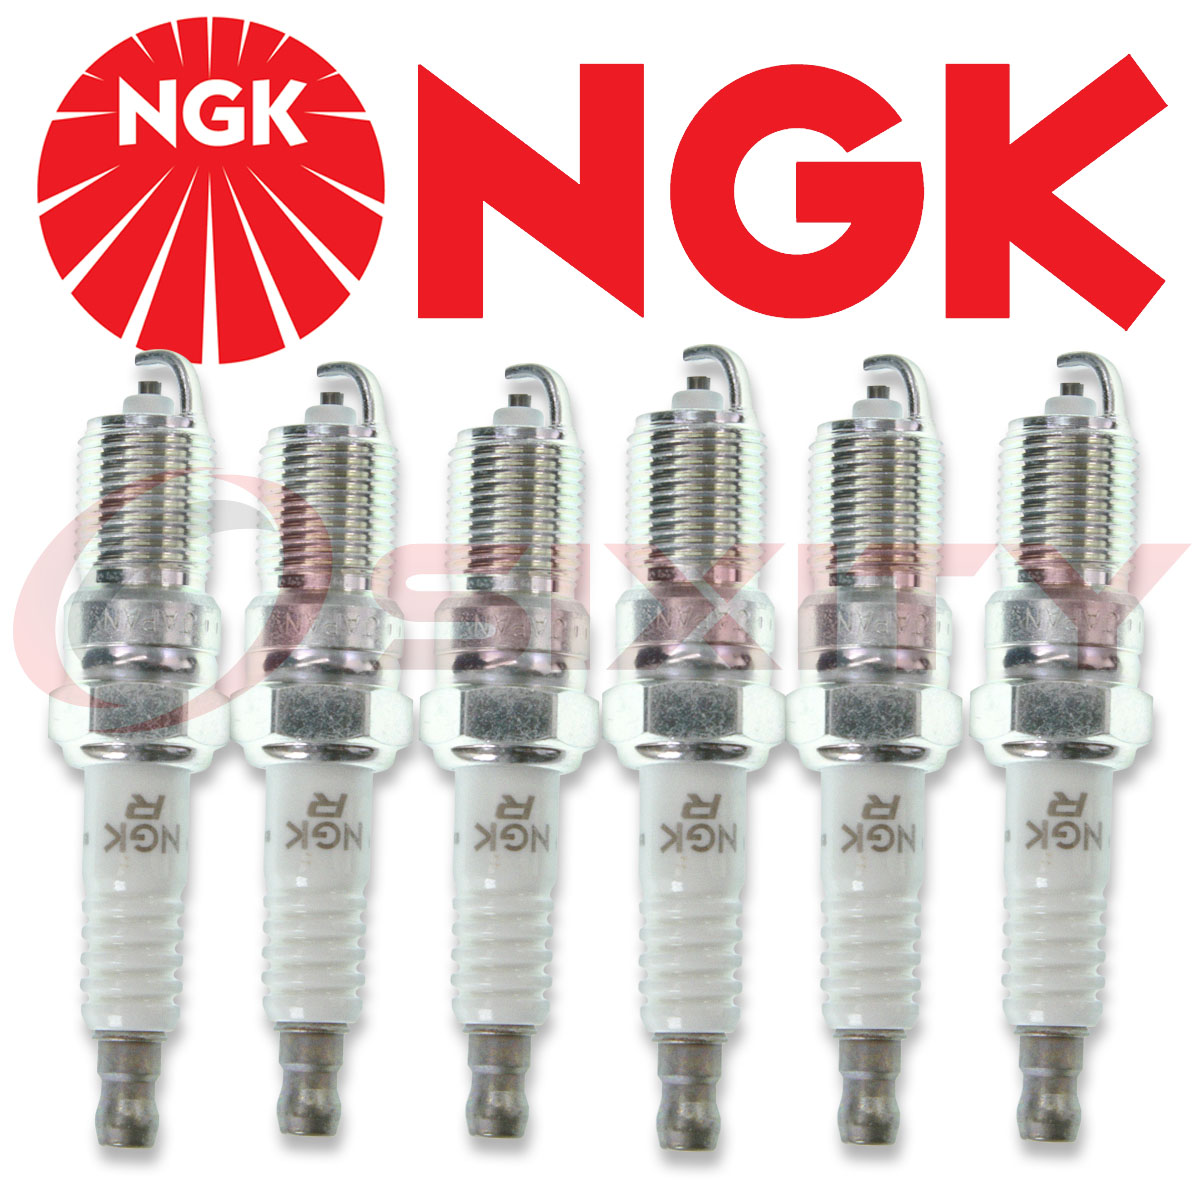 spark plugs NGK new TR55 stock # 3951